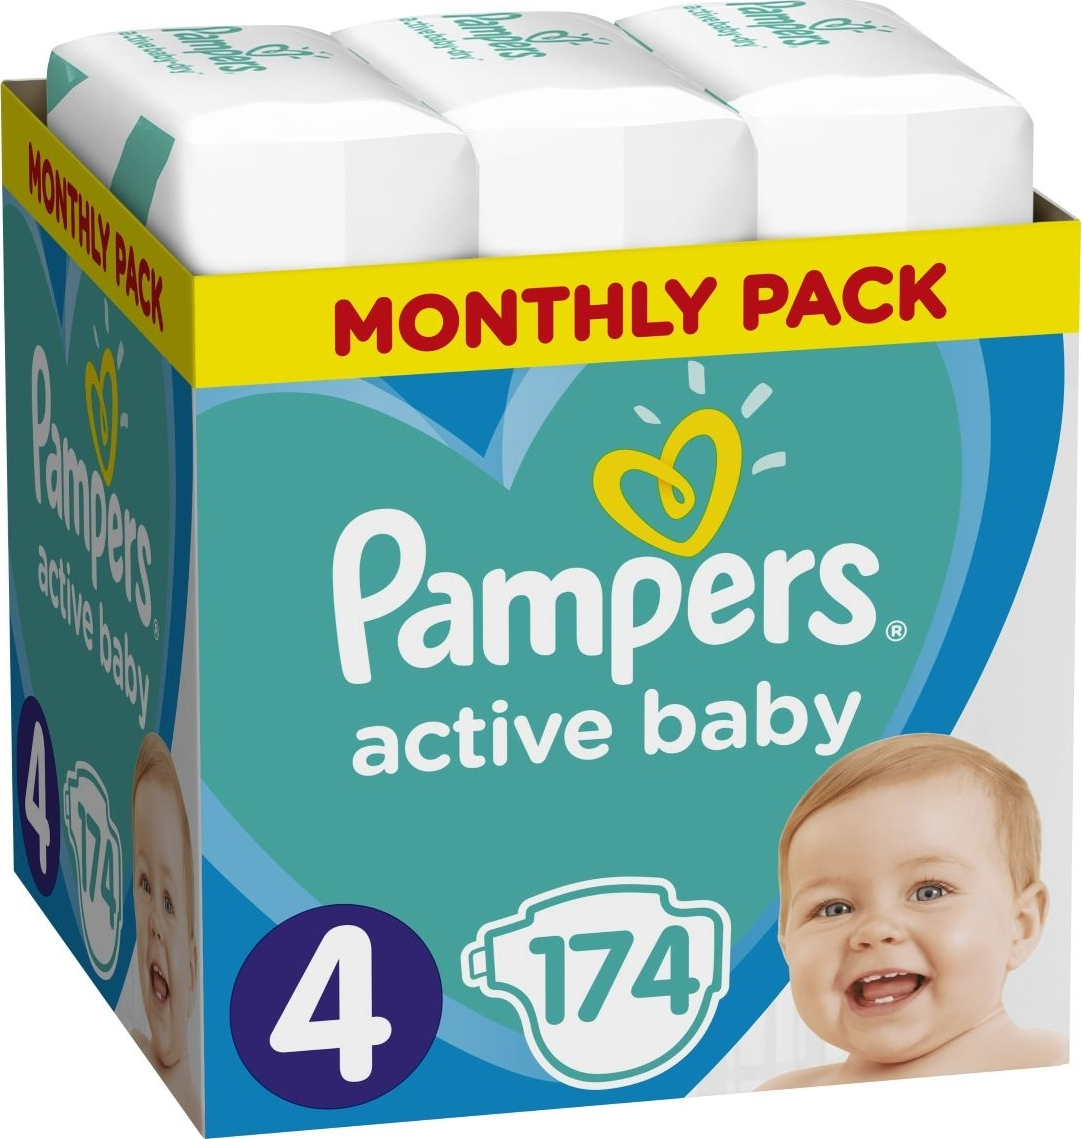 7aa336c9f4b Προσθήκη στα αγαπημένα menu Pampers Active Baby Monthly No 4 (9-14kg) 174τμχ